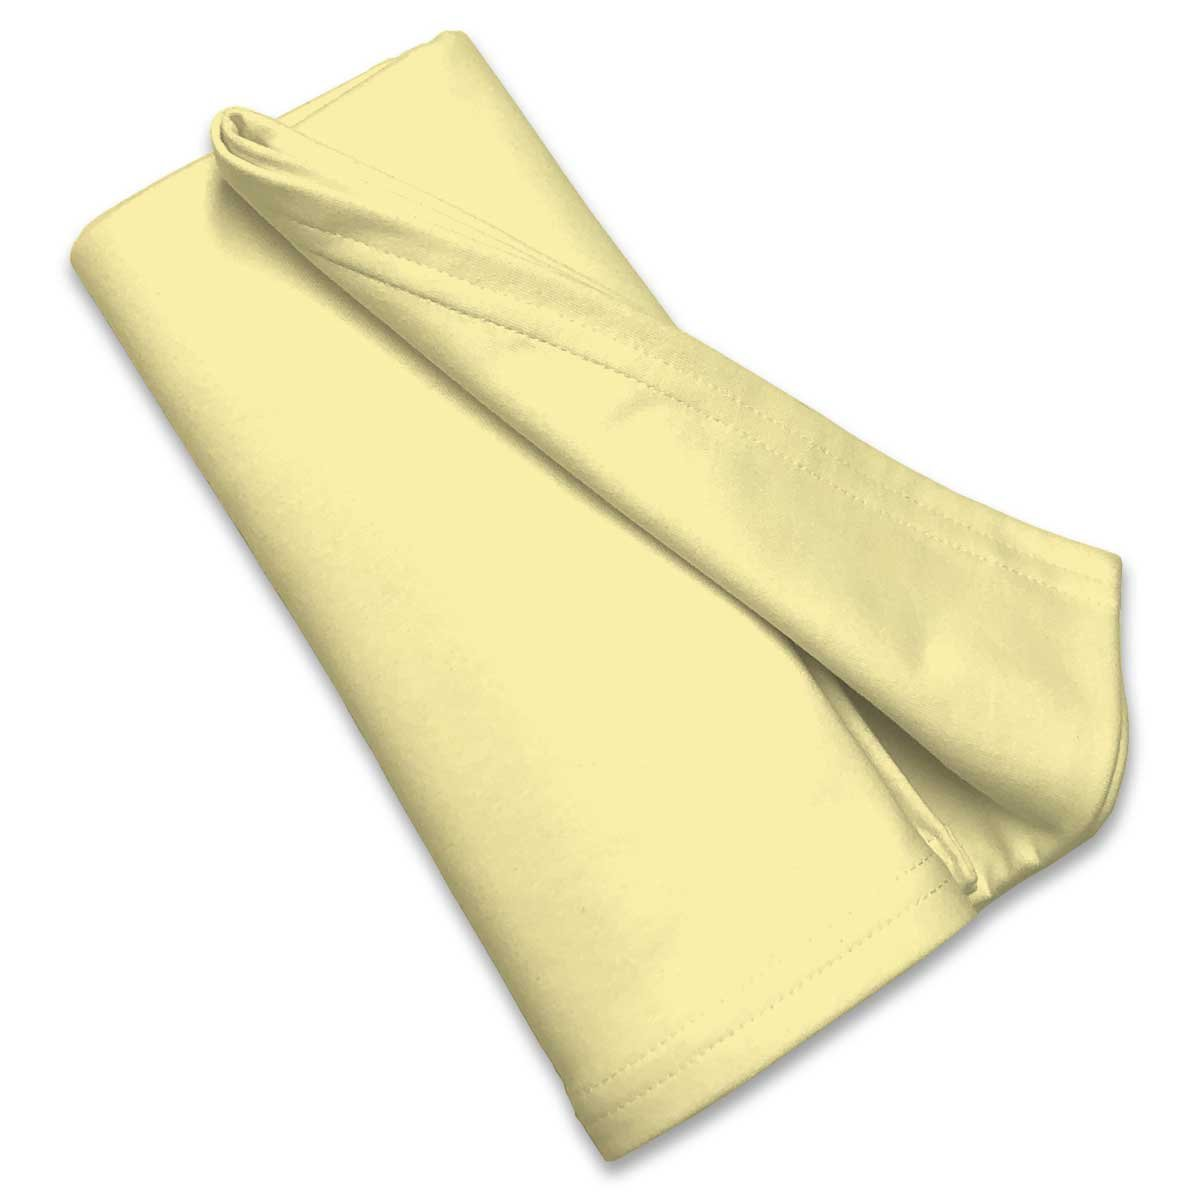 SheetWorld Soft & Stretchy Swaddle Blanket - Pale Yellow - Made In USA